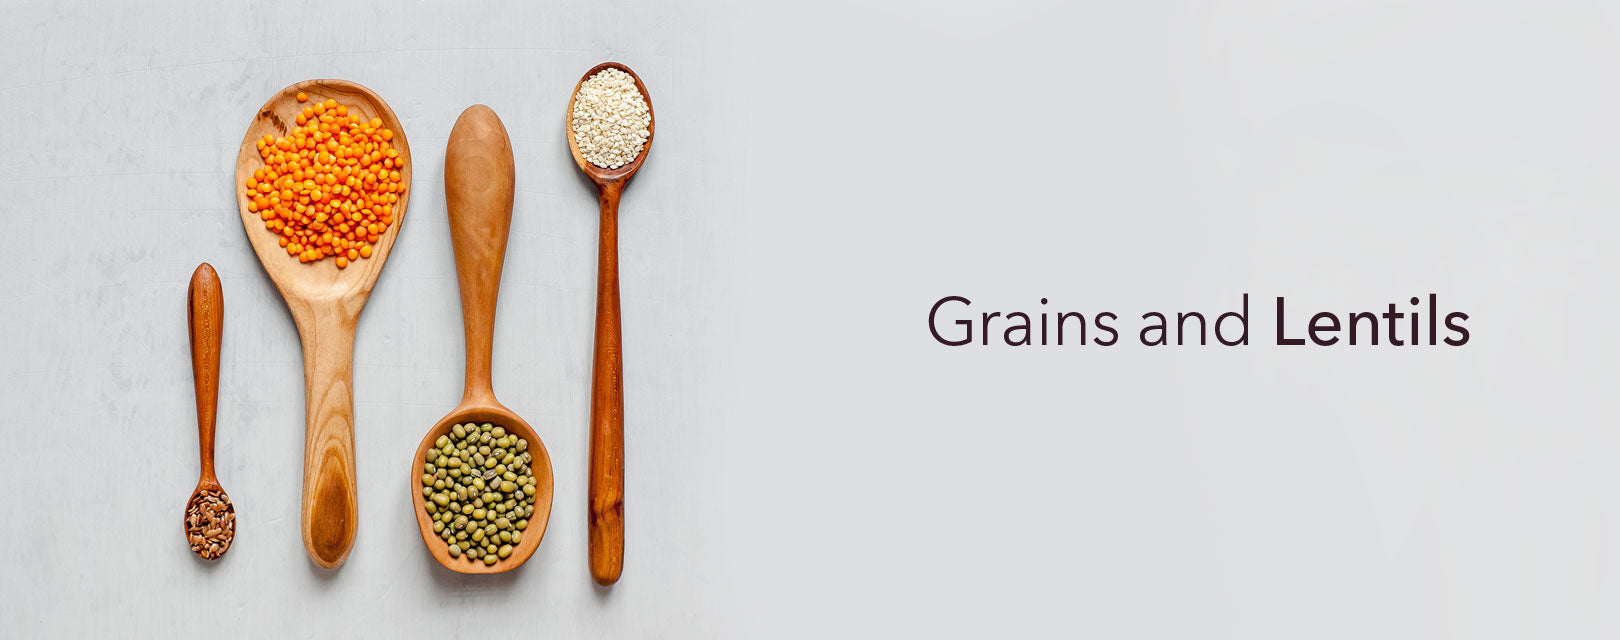 Grains Lentils & Superfoods